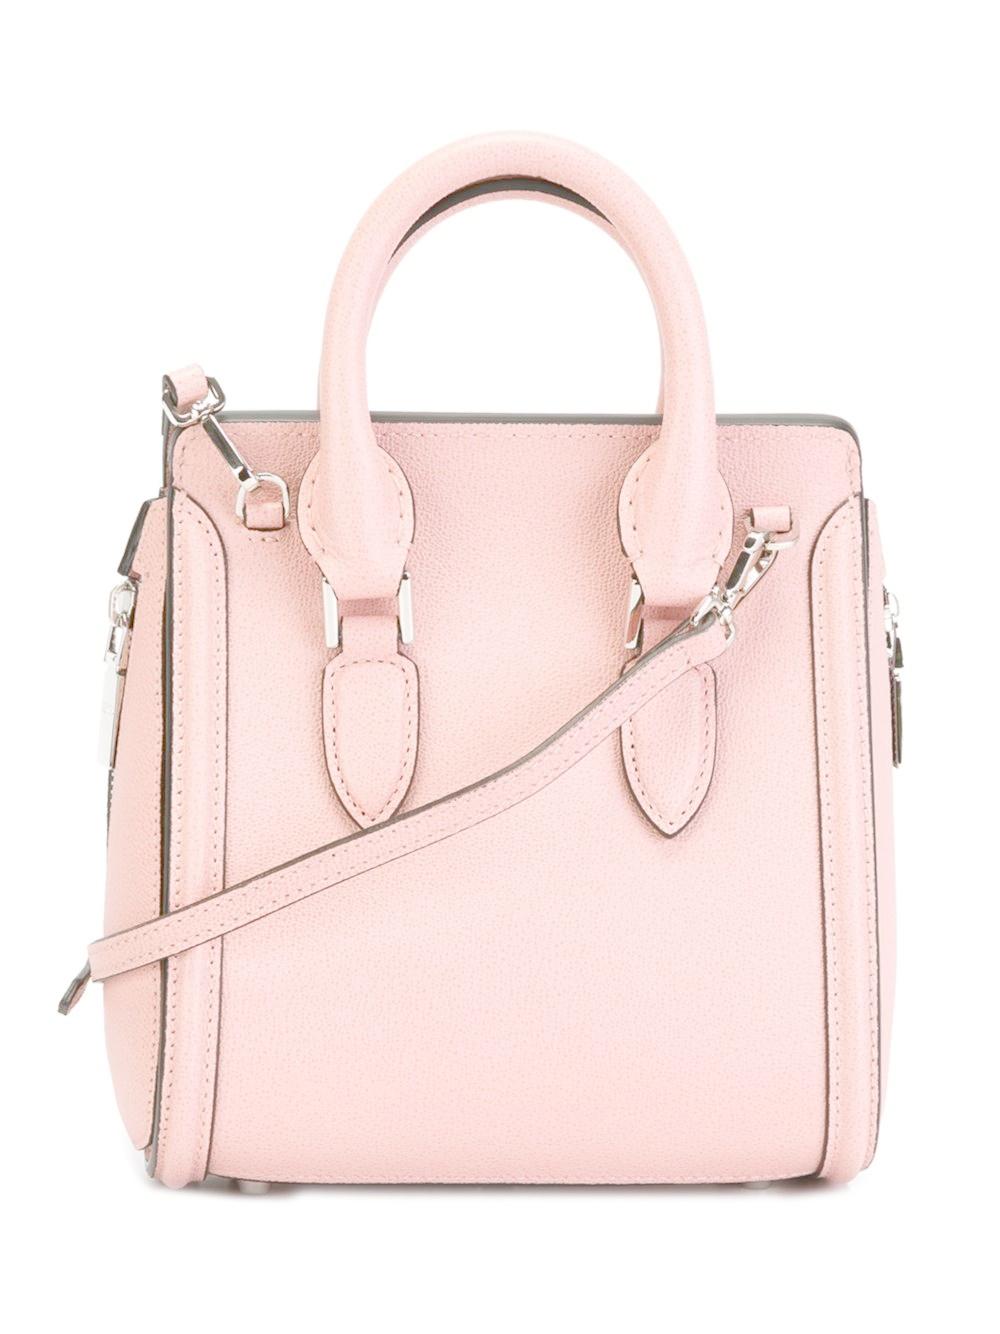 Alexander mcqueen Mini 'heroine' Shoulder Bag in Natural ...